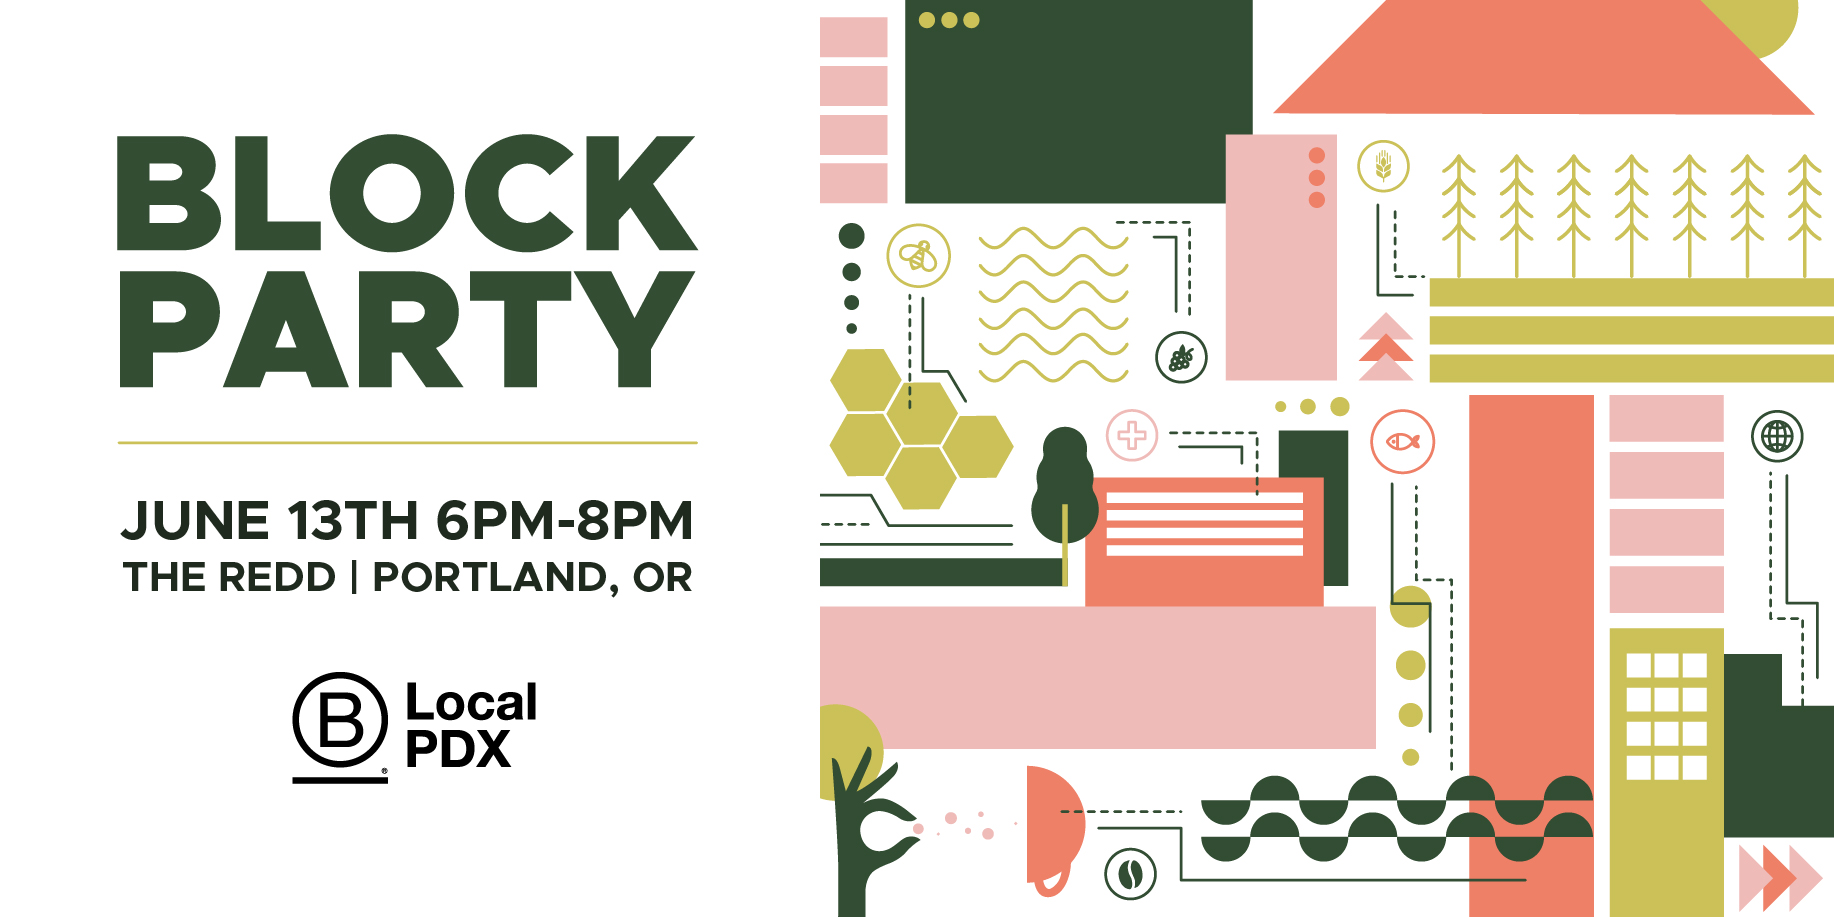 B Corp Block Party - June 13, 2019